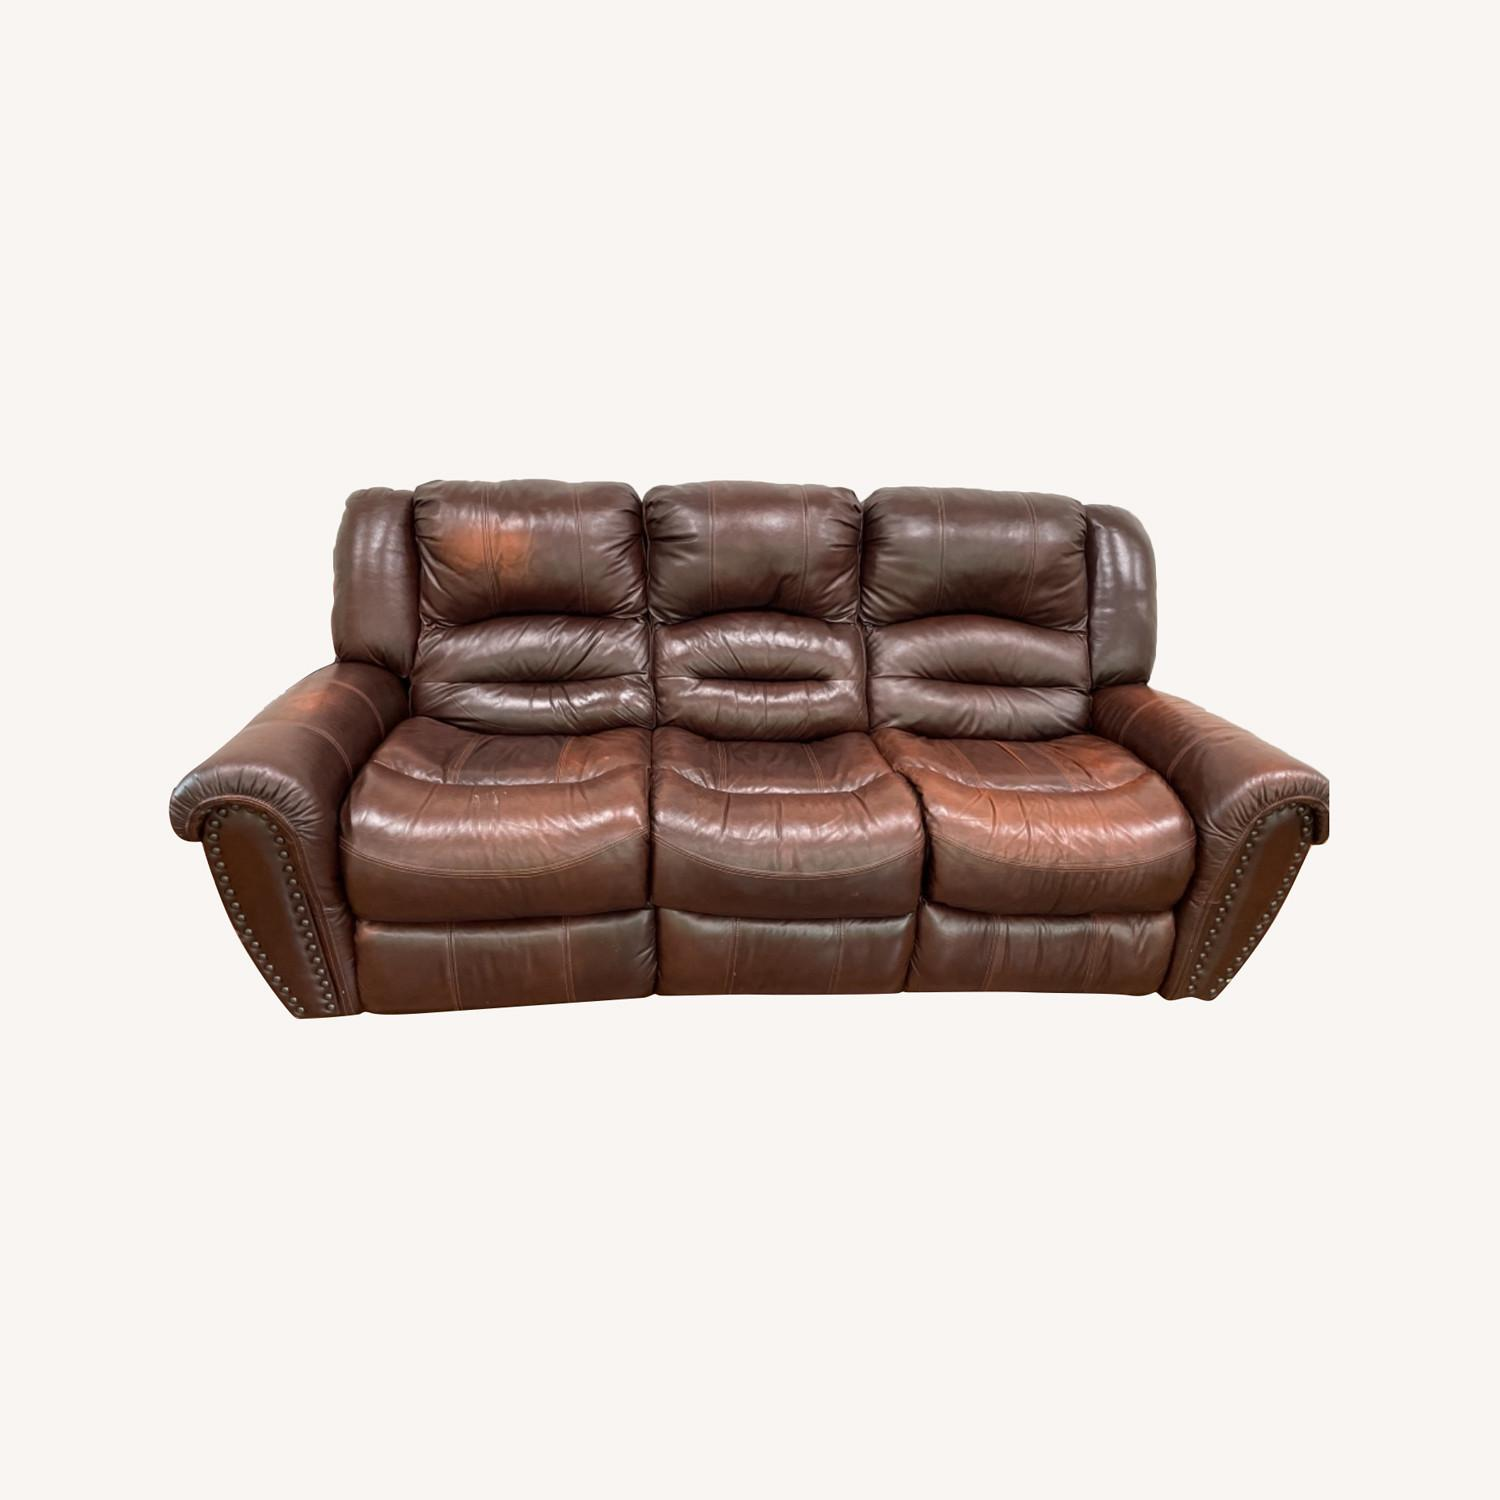 La-Z-Boy 3 Seat Leather Sofa and Recliner - image-0